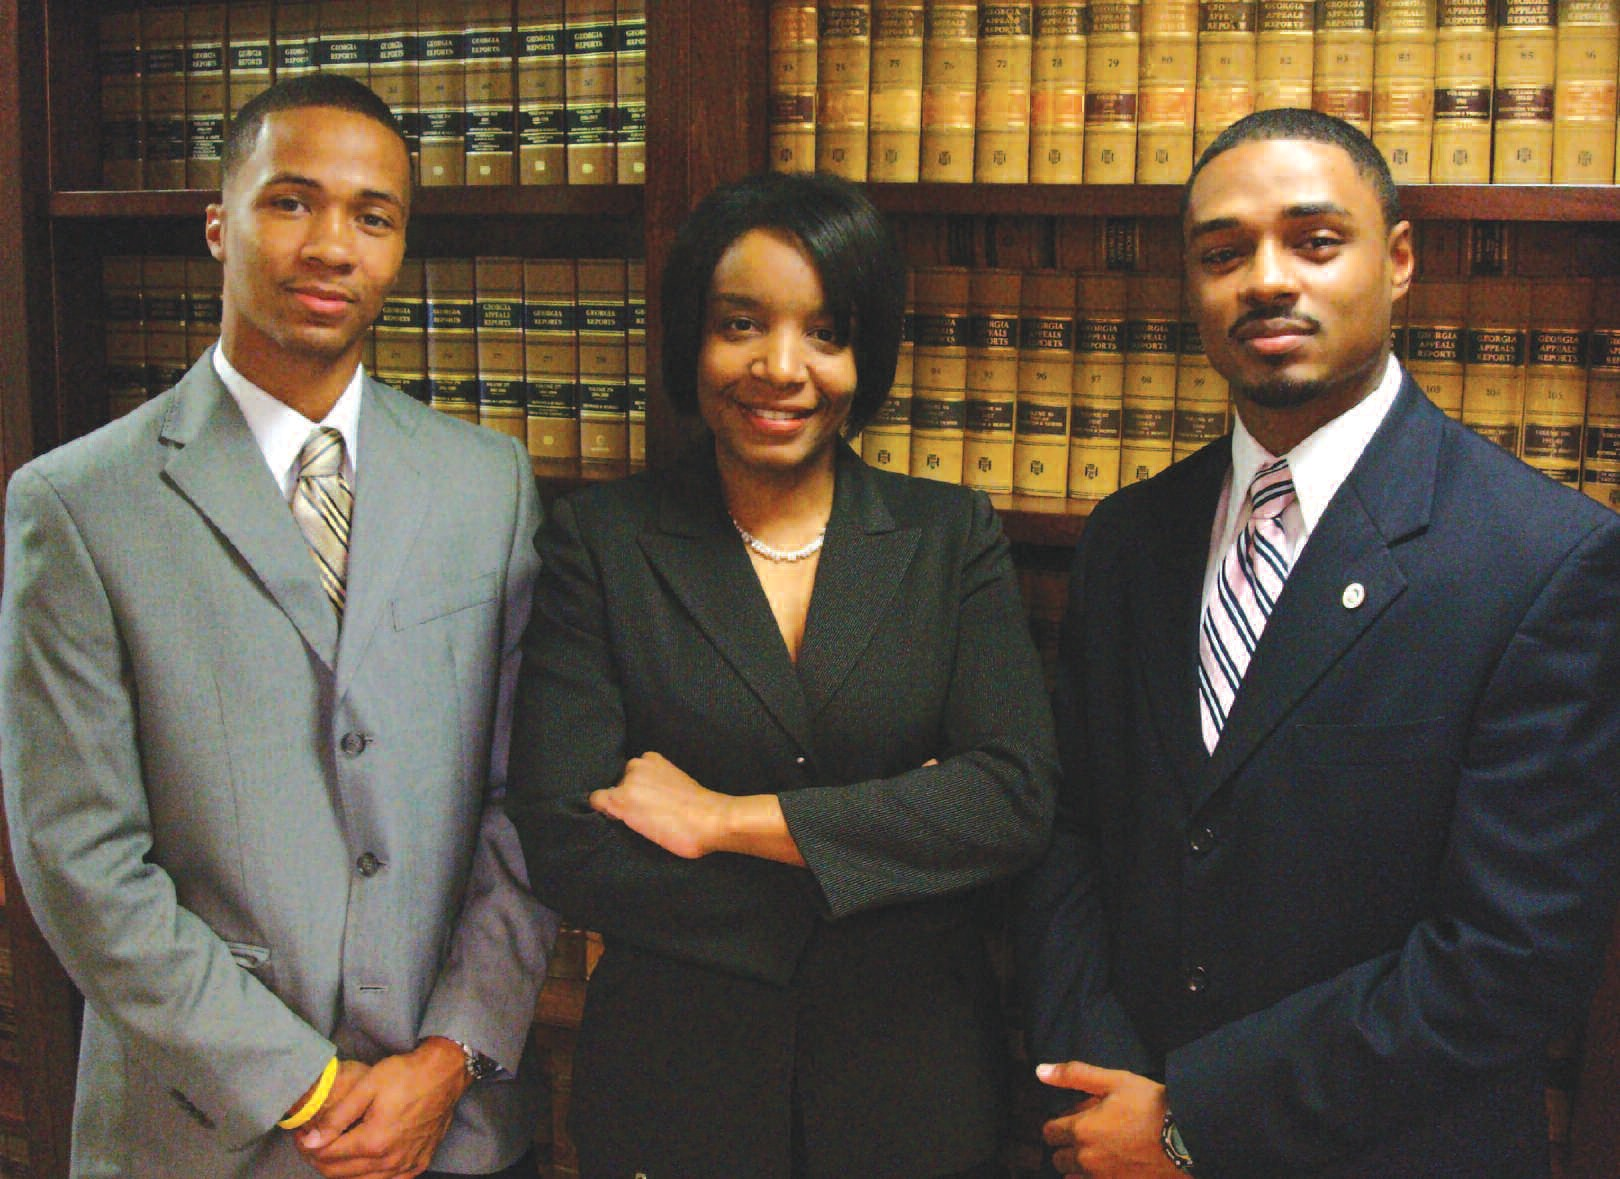 Pictured L to R are: Jonathan Drummond (Investigator), Kesha Gibson-Carter (Coordinator) and Christoper Brown (Intervention Specialist)